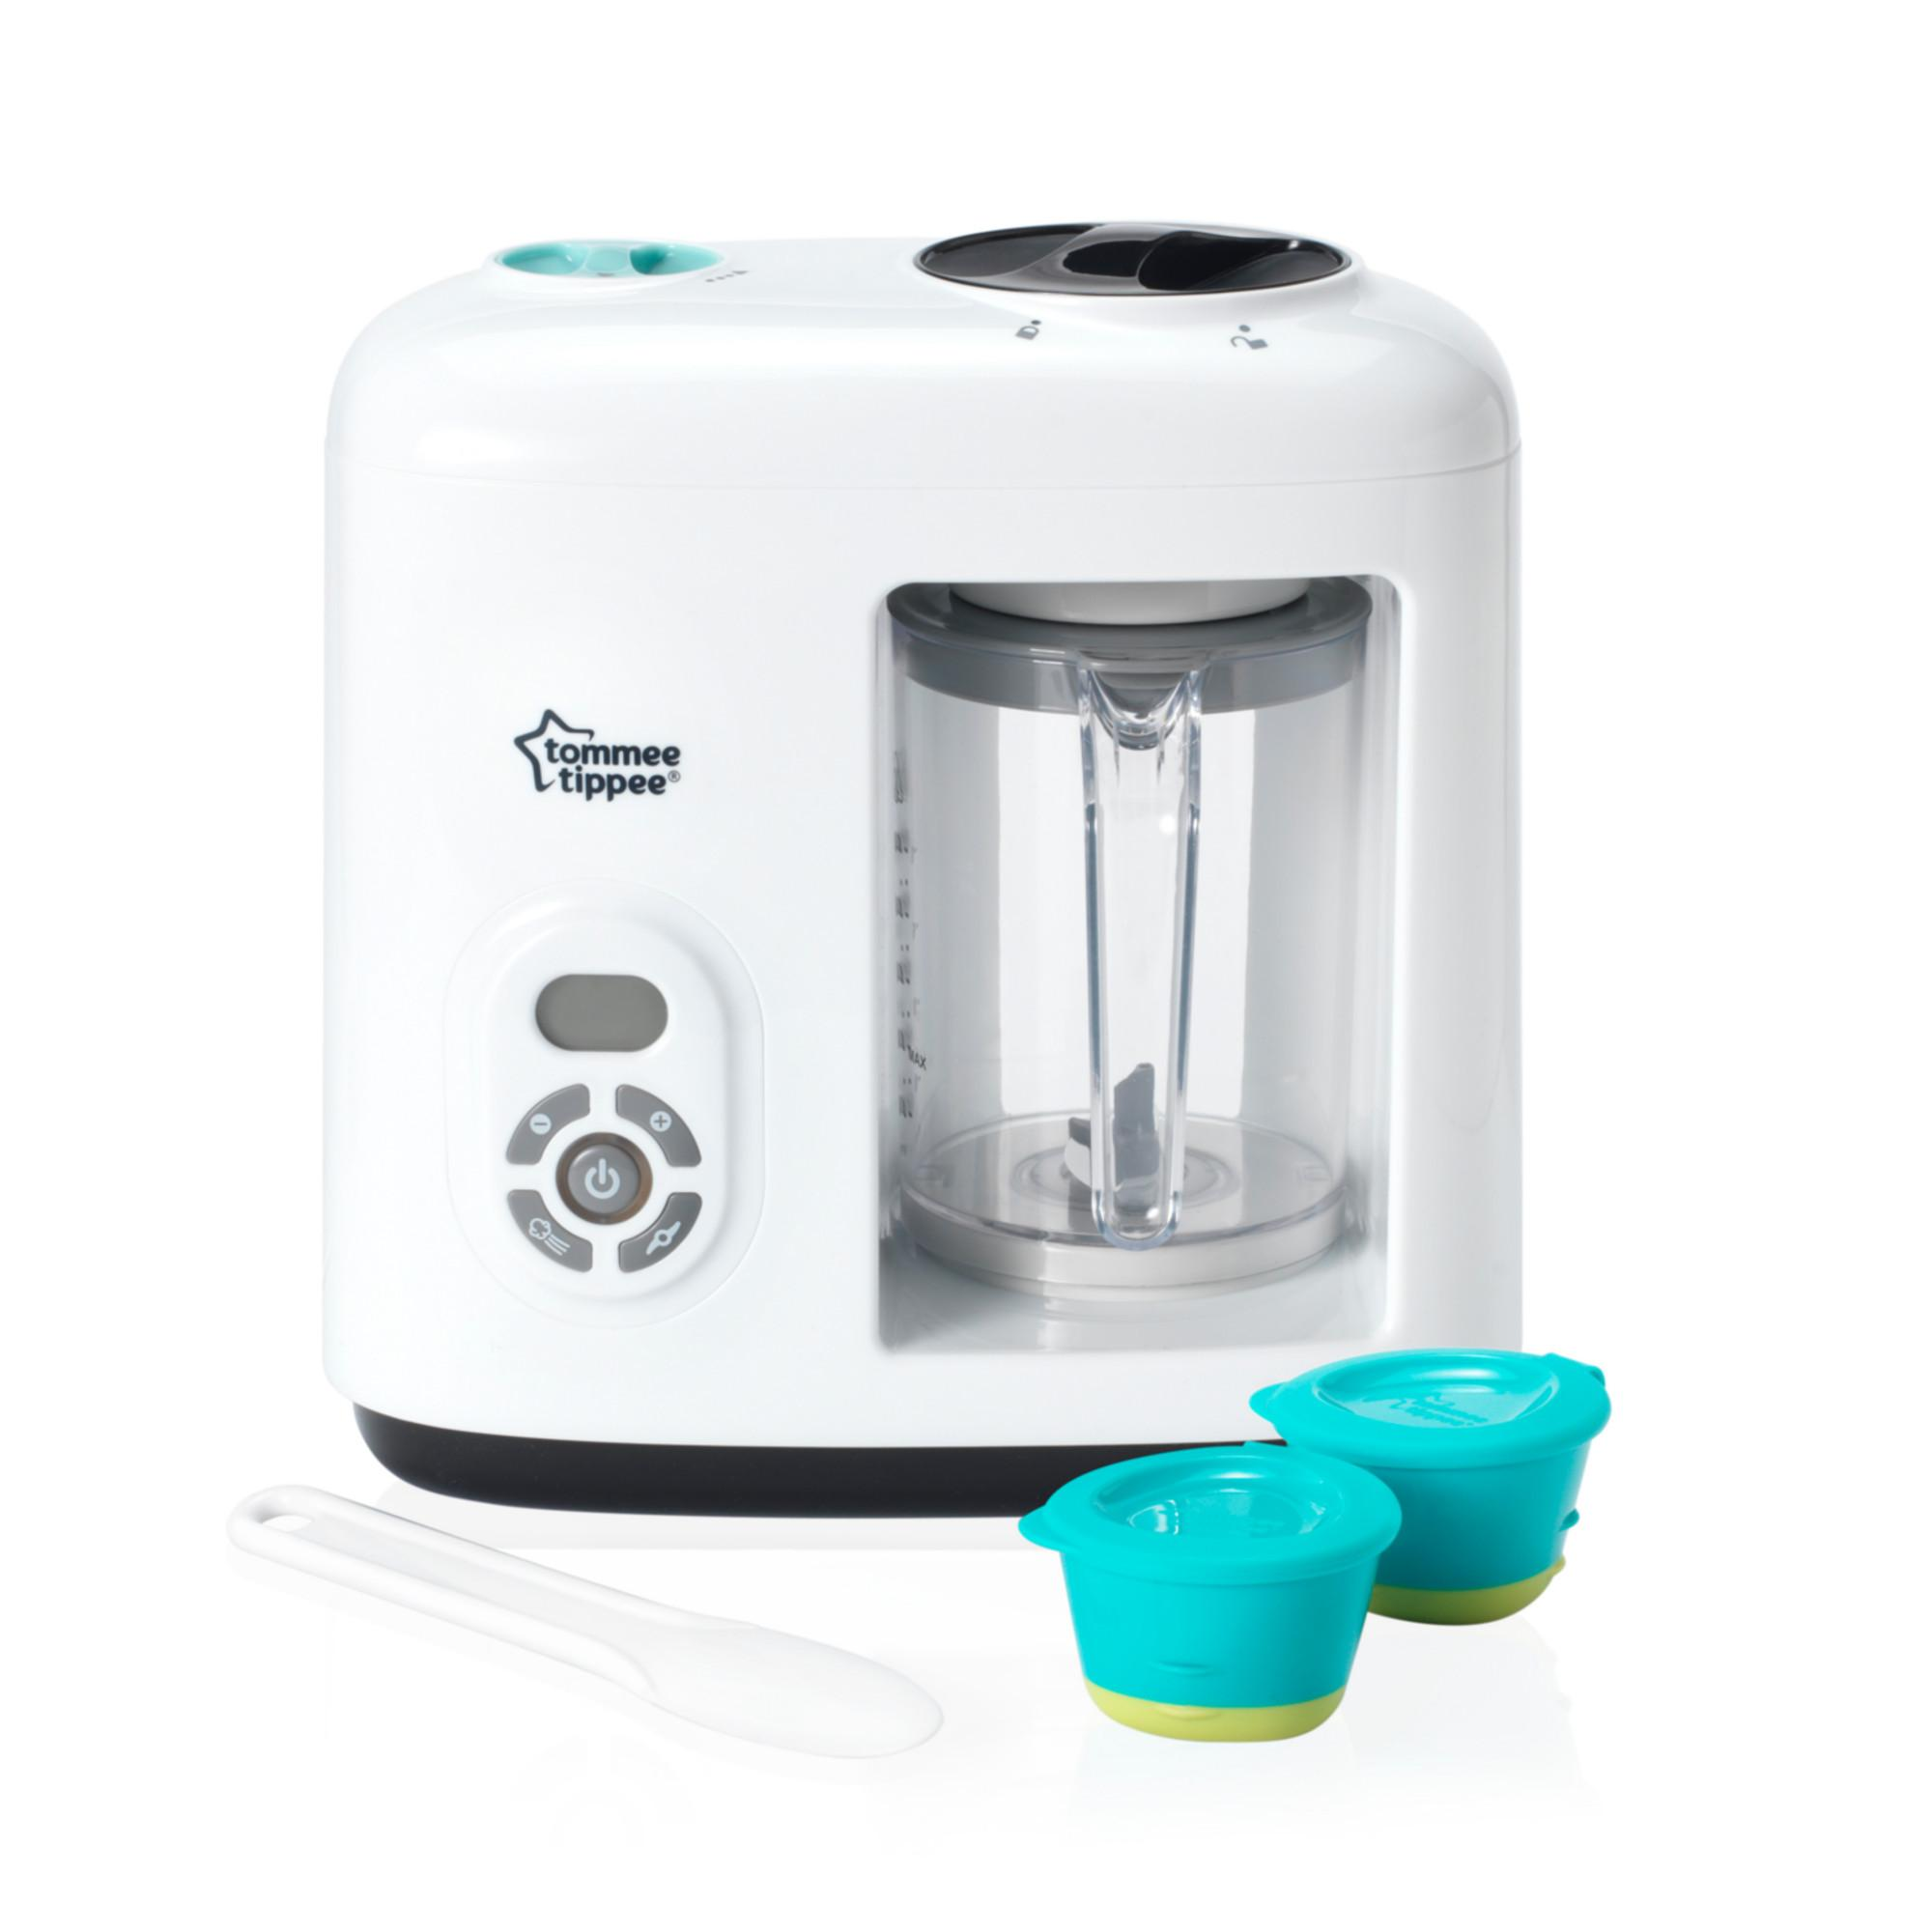 Tommee Tippee Baby Food Steamer Blender Amazon Co Uk Baby